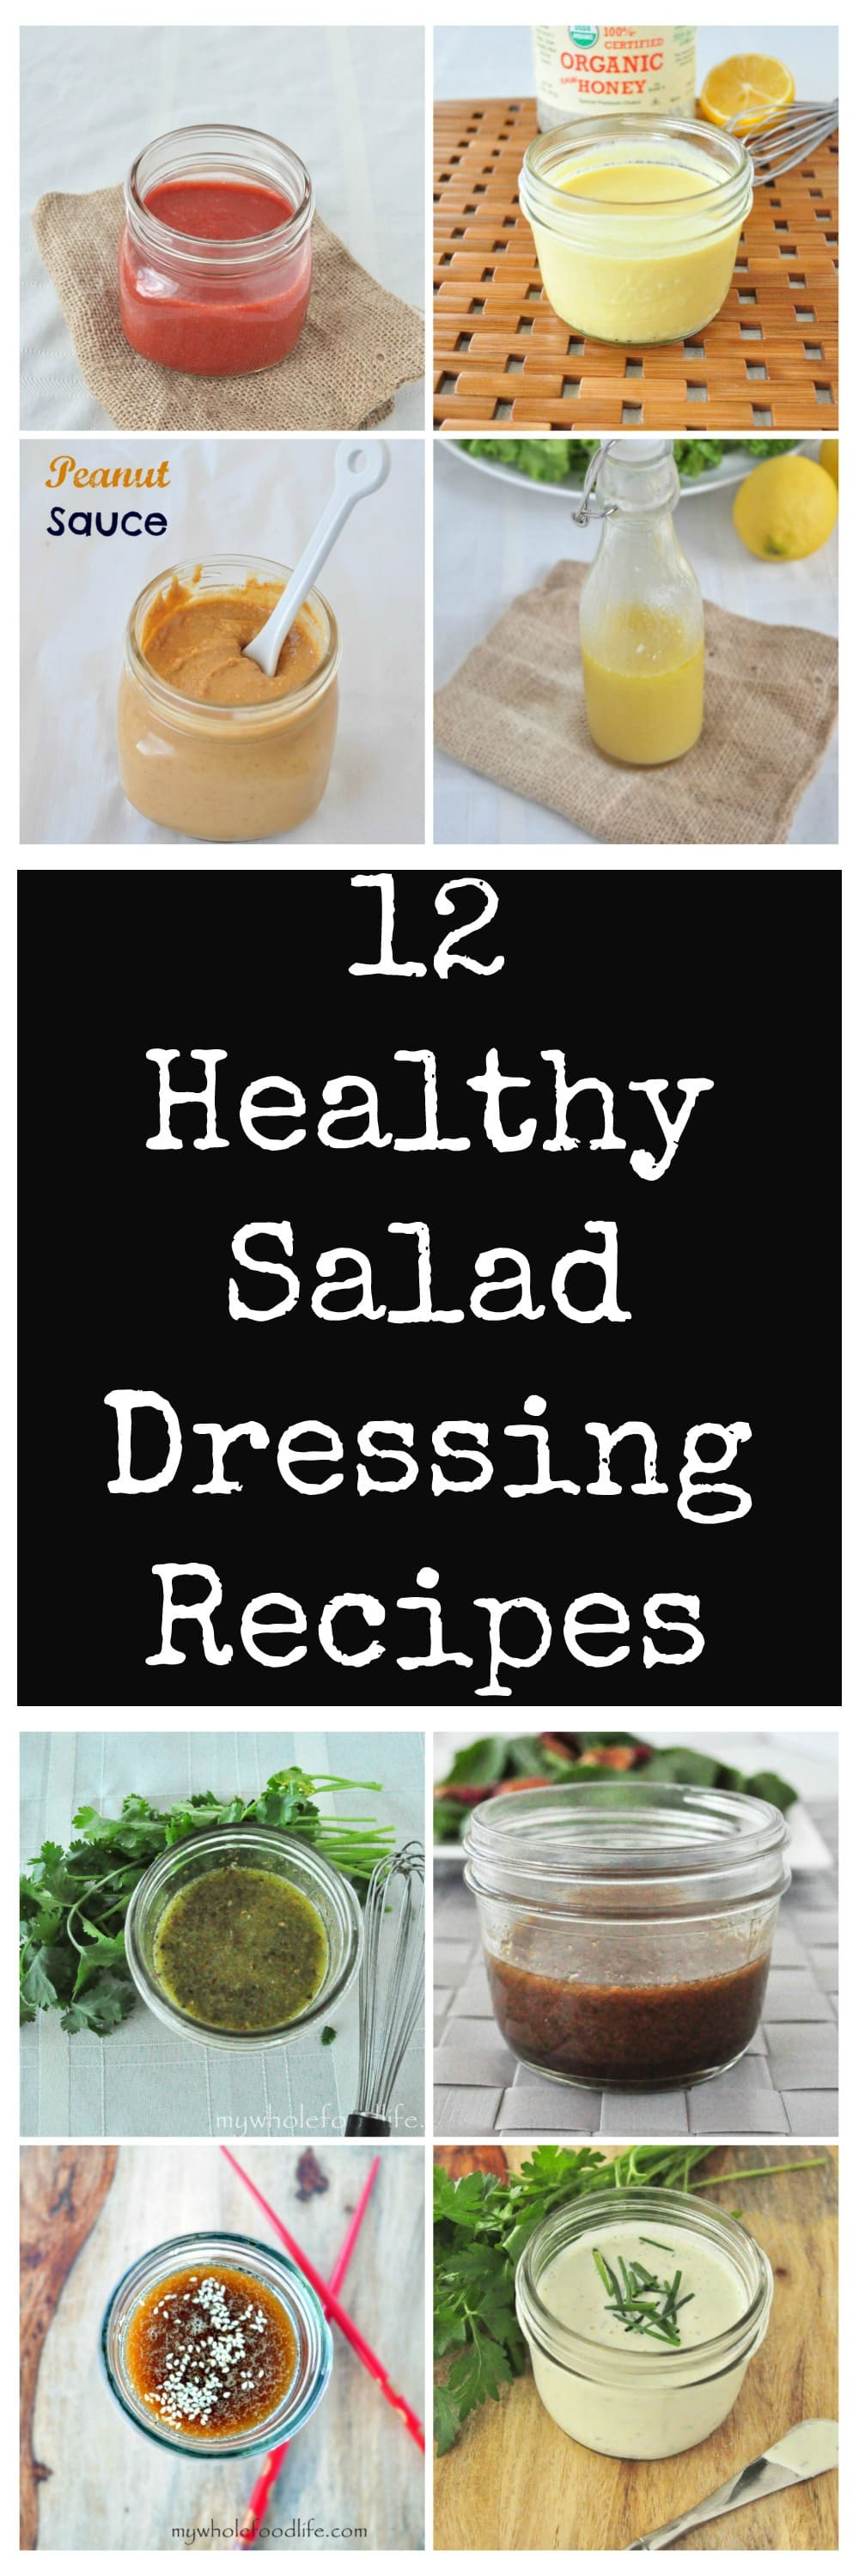 Recipes For Healthy Salad Dressings  12 Healthy Salad Dressing Recipes My Whole Food Life